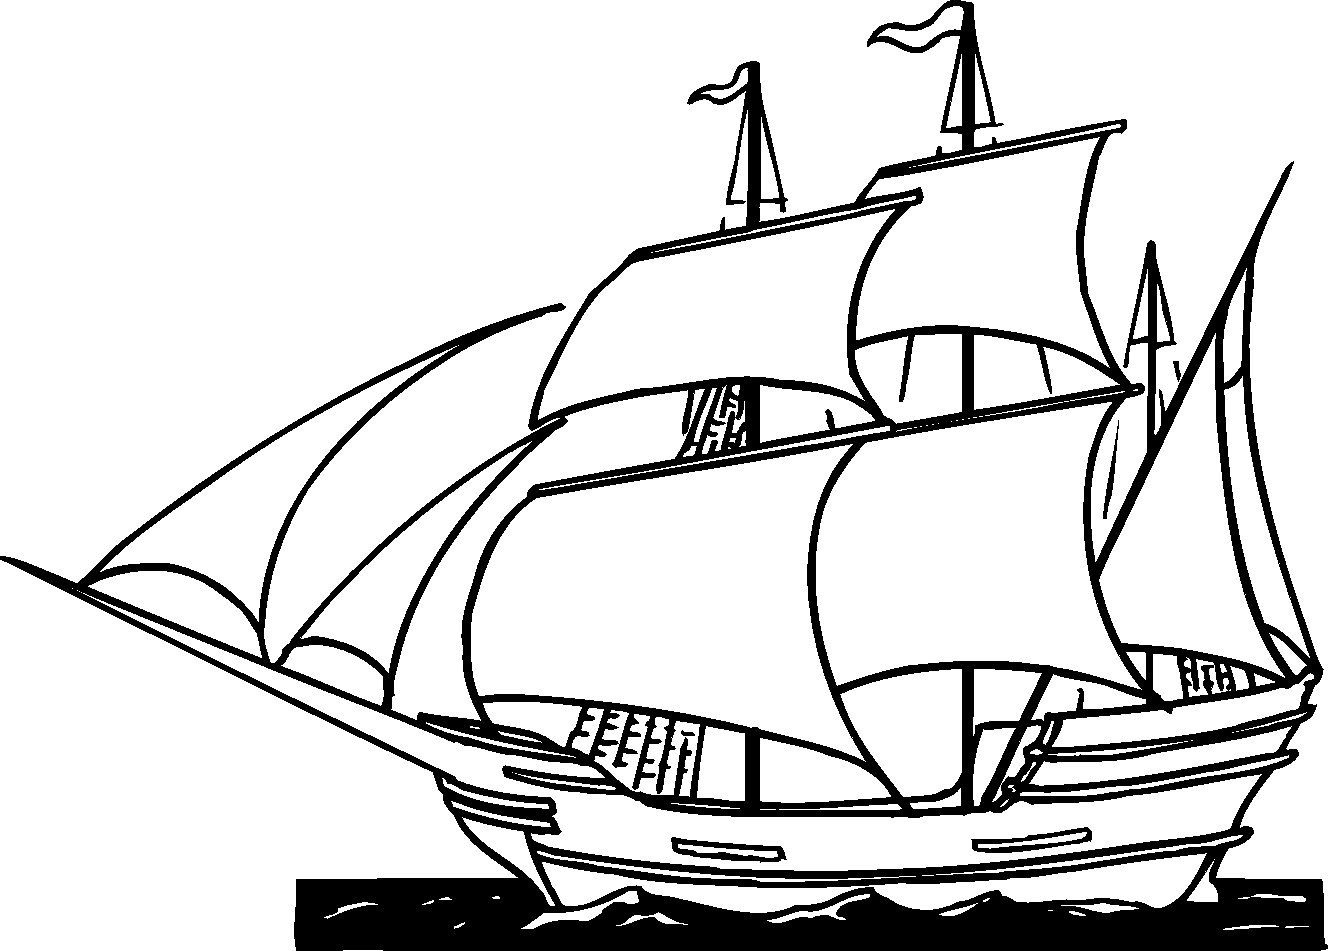 Free Printable Ships Coloring Pages For Boys   Ap Us History   Free - Free Printable Boat Pictures